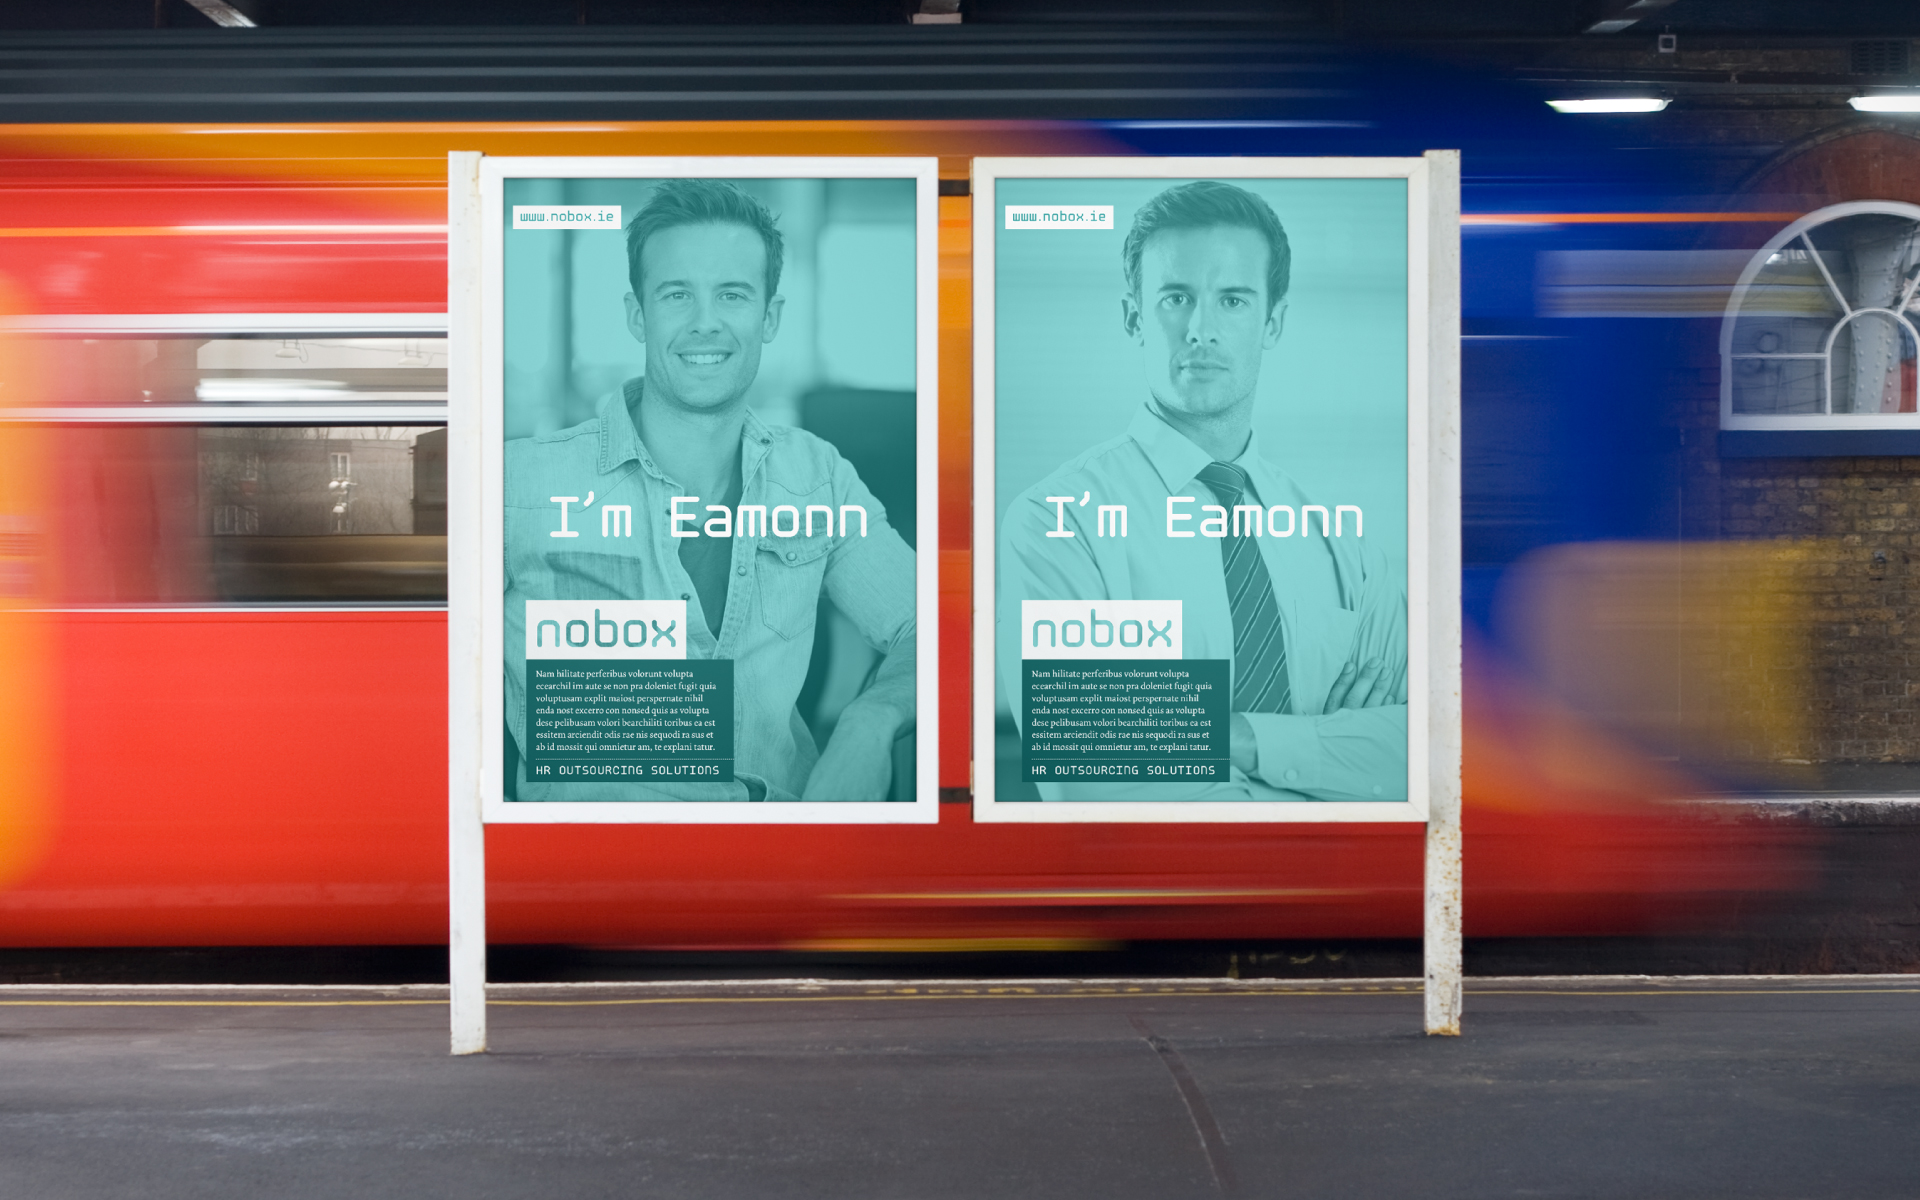 Nobox HR Outsourcing Solutions outdoor advertising